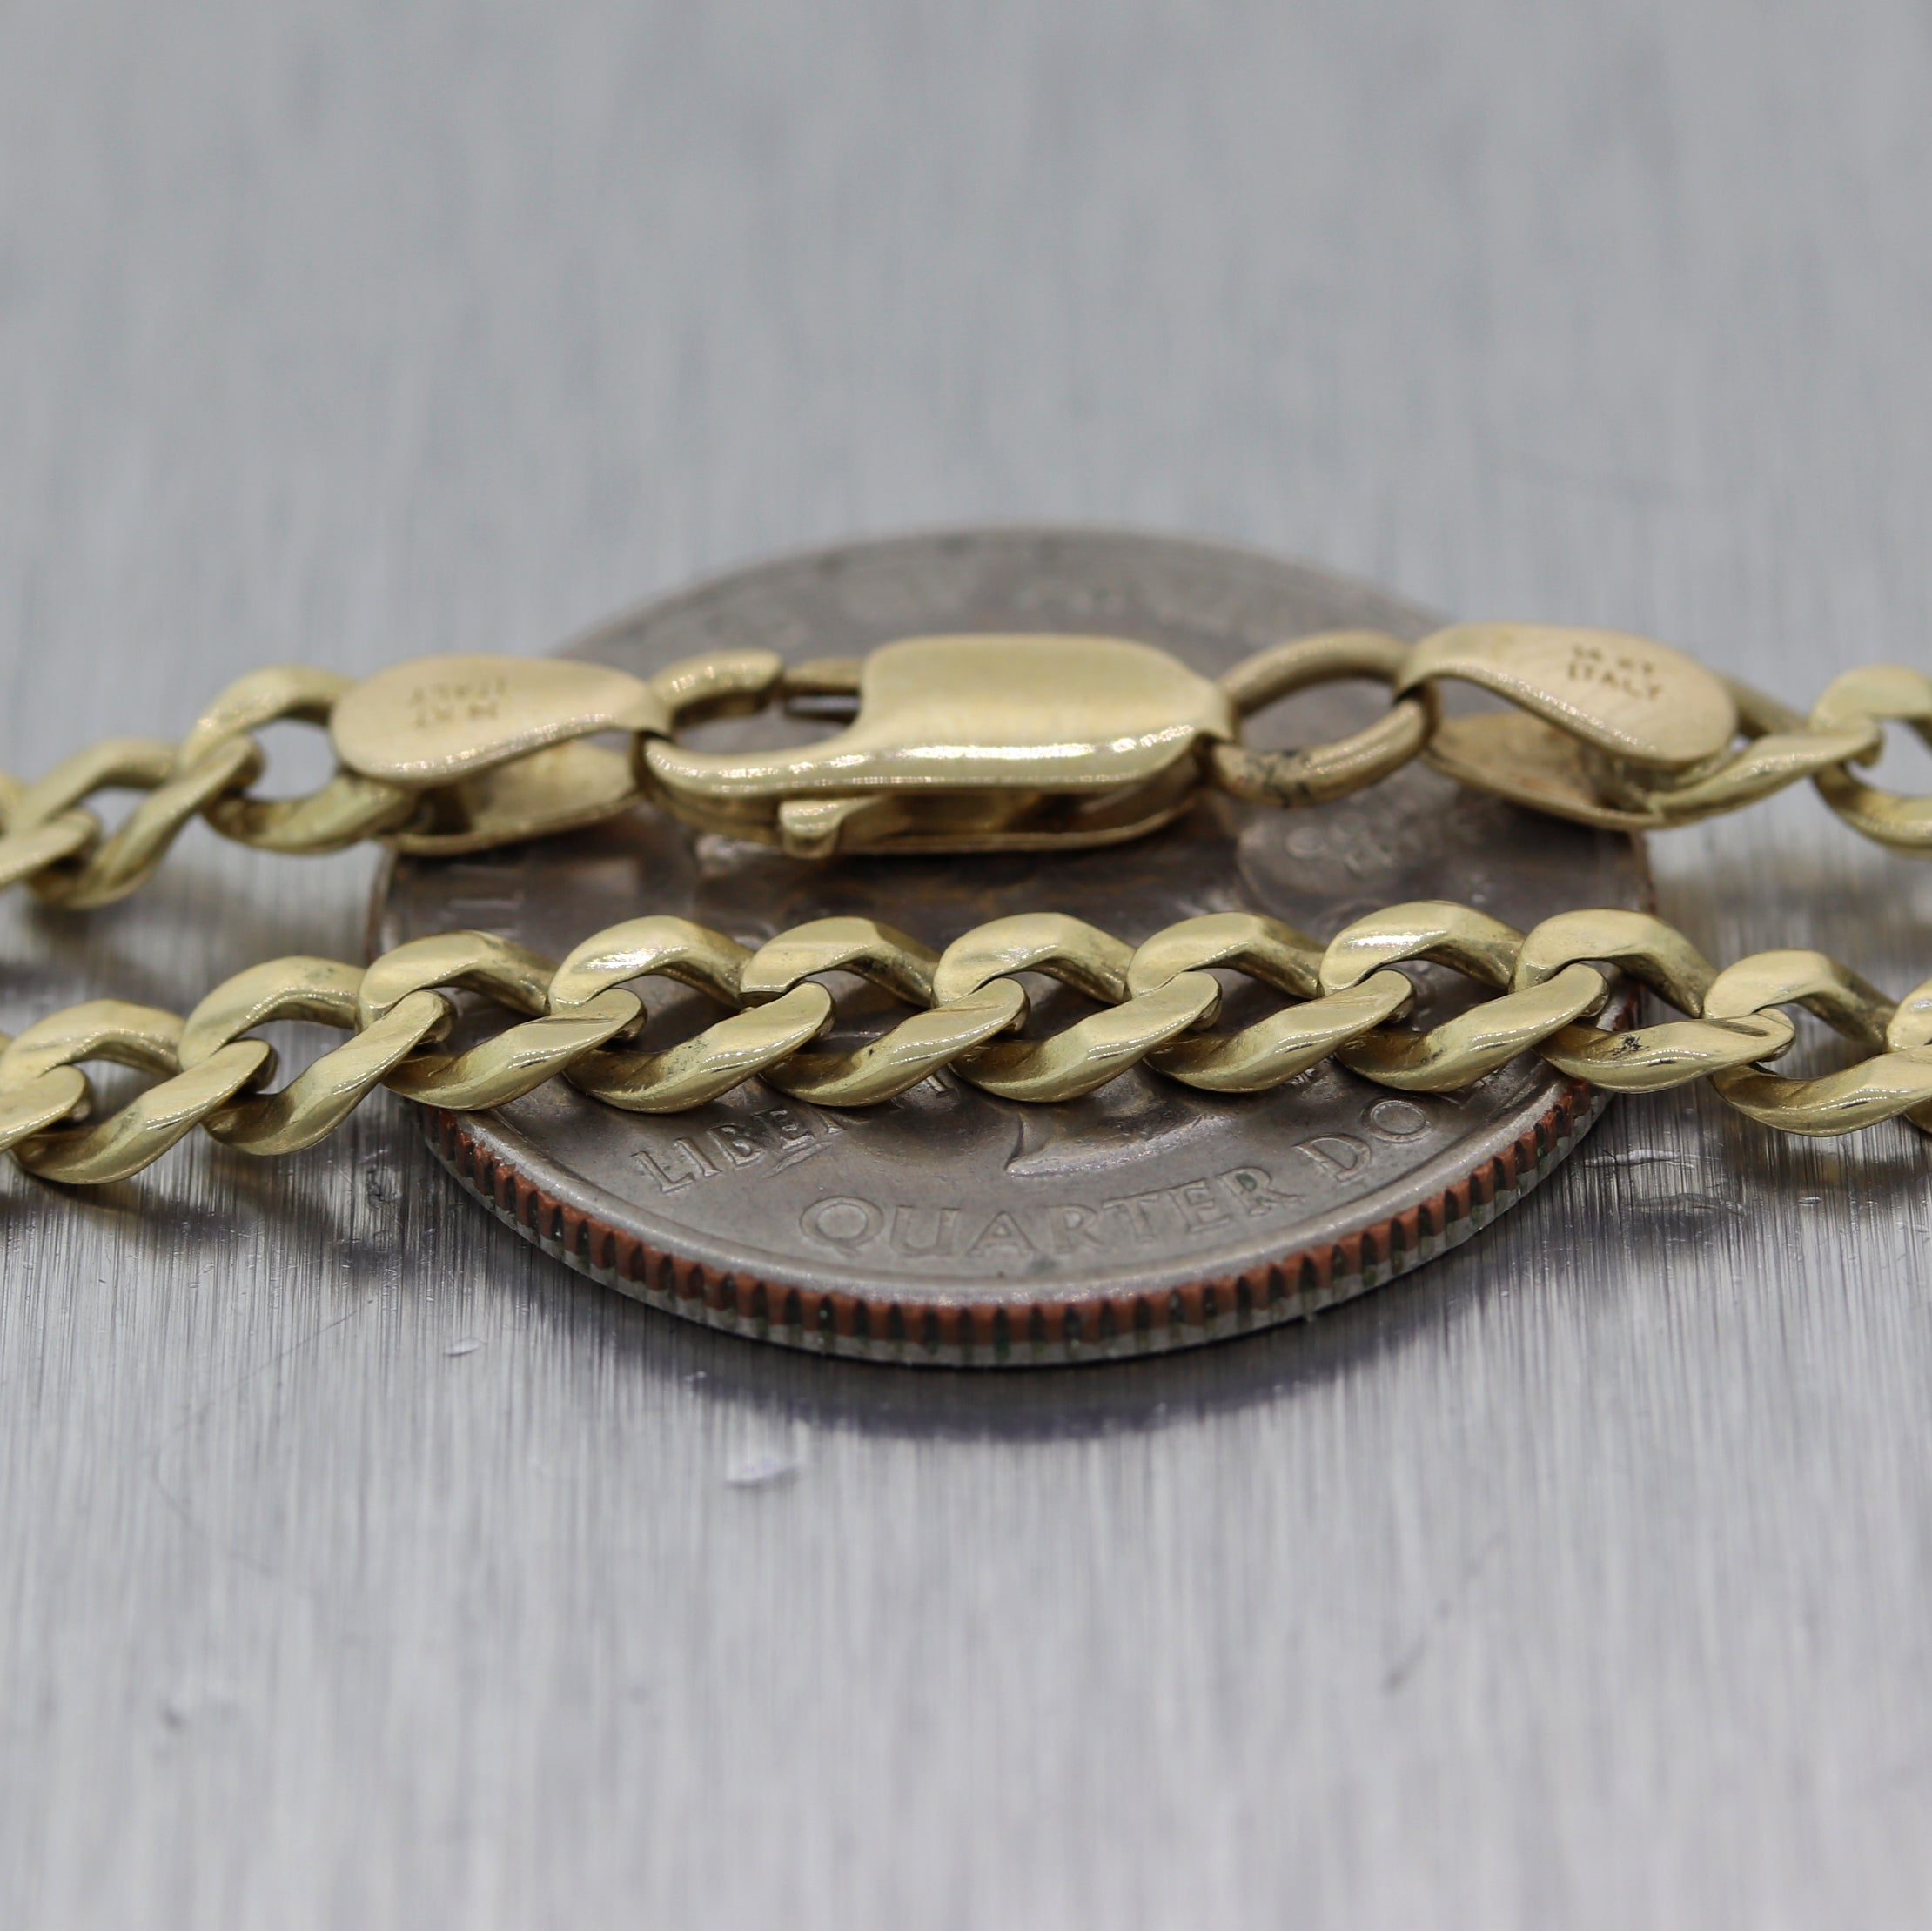 "Mens Chain 18.41g Heavy 14k Yellow Gold Cuban Curb Link 23"" Long Necklace"